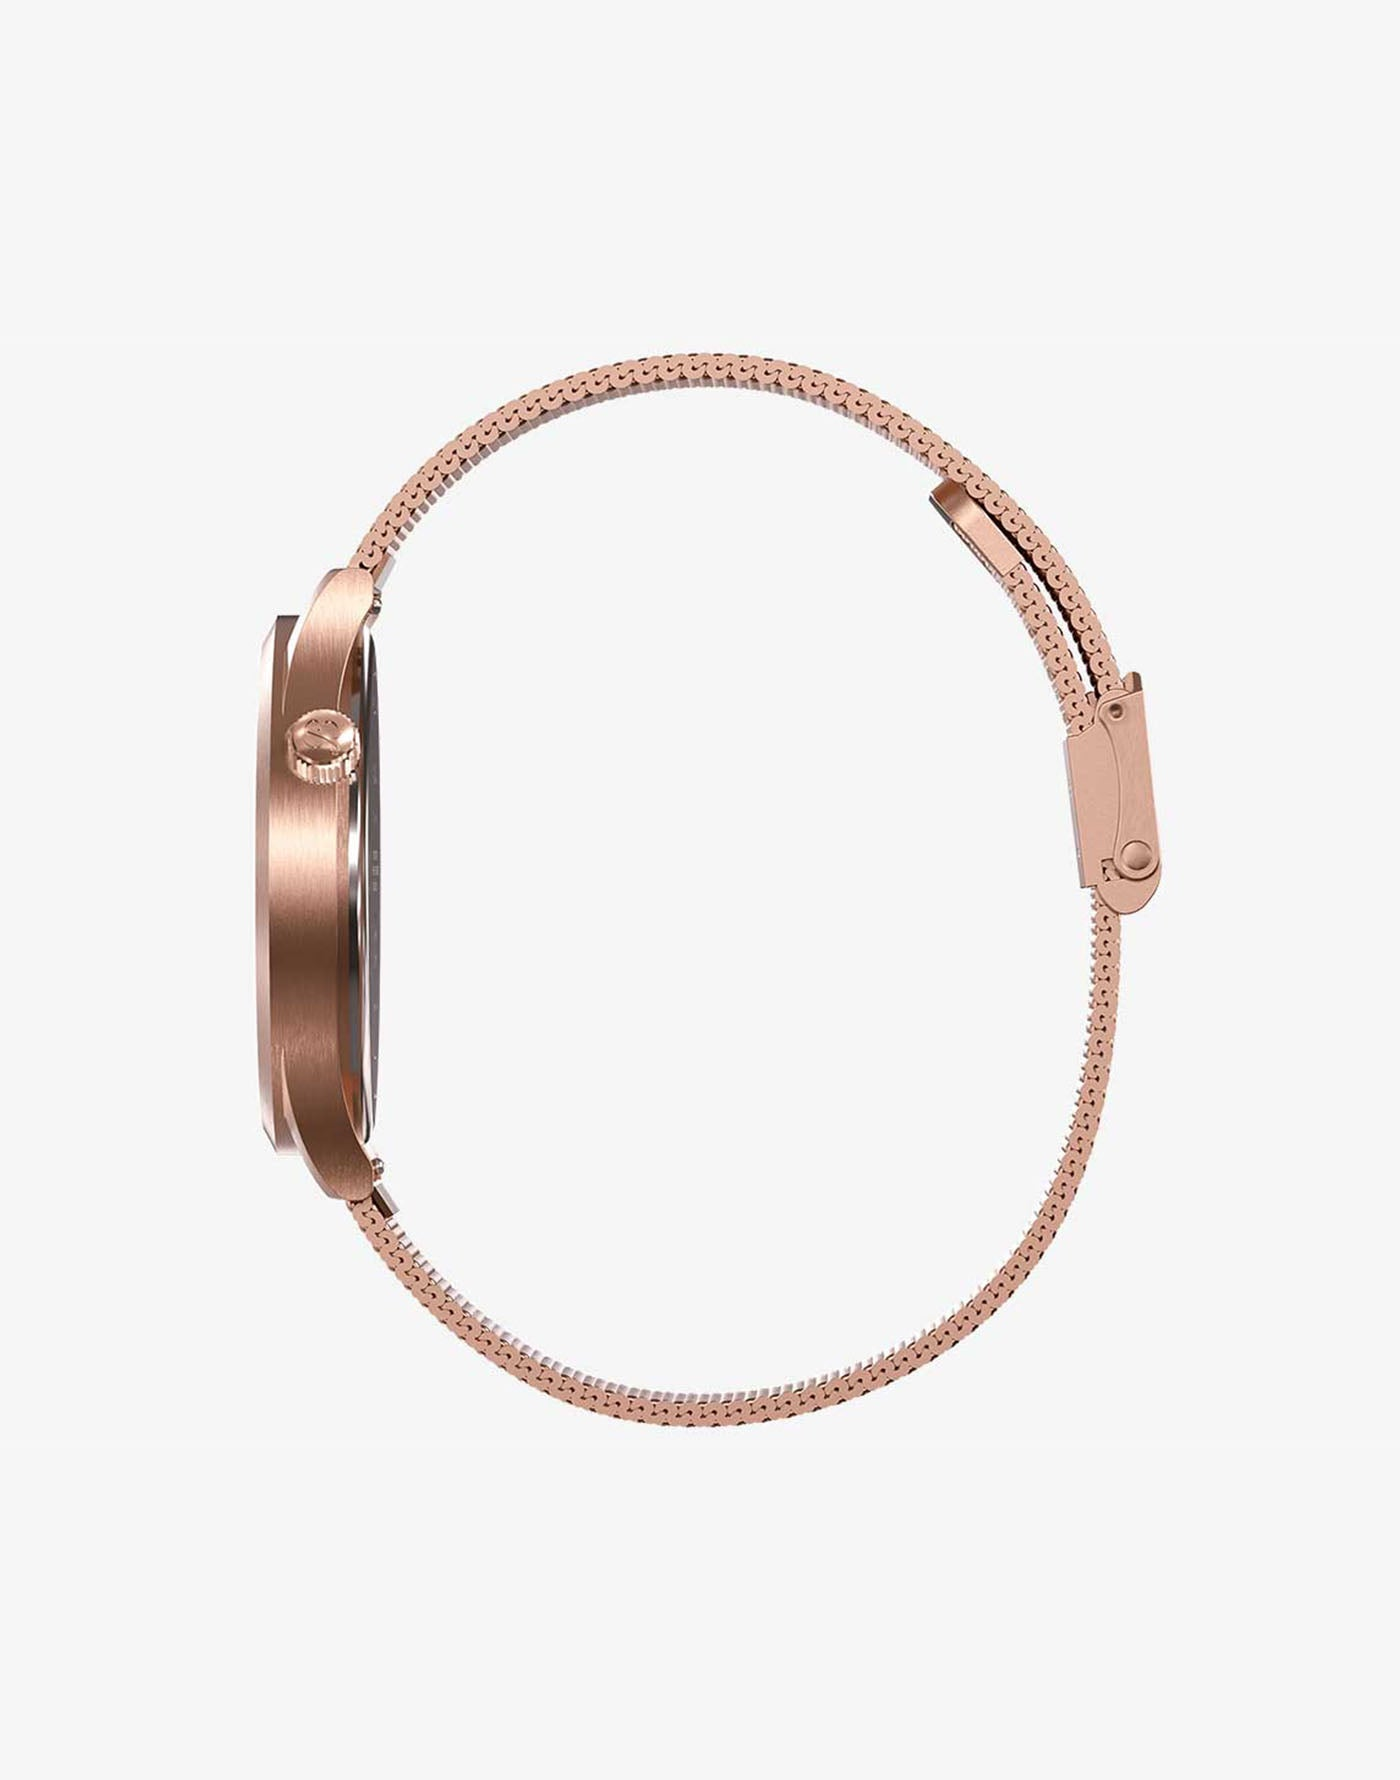 Ø 38mm · ROSE GOLD WHITE